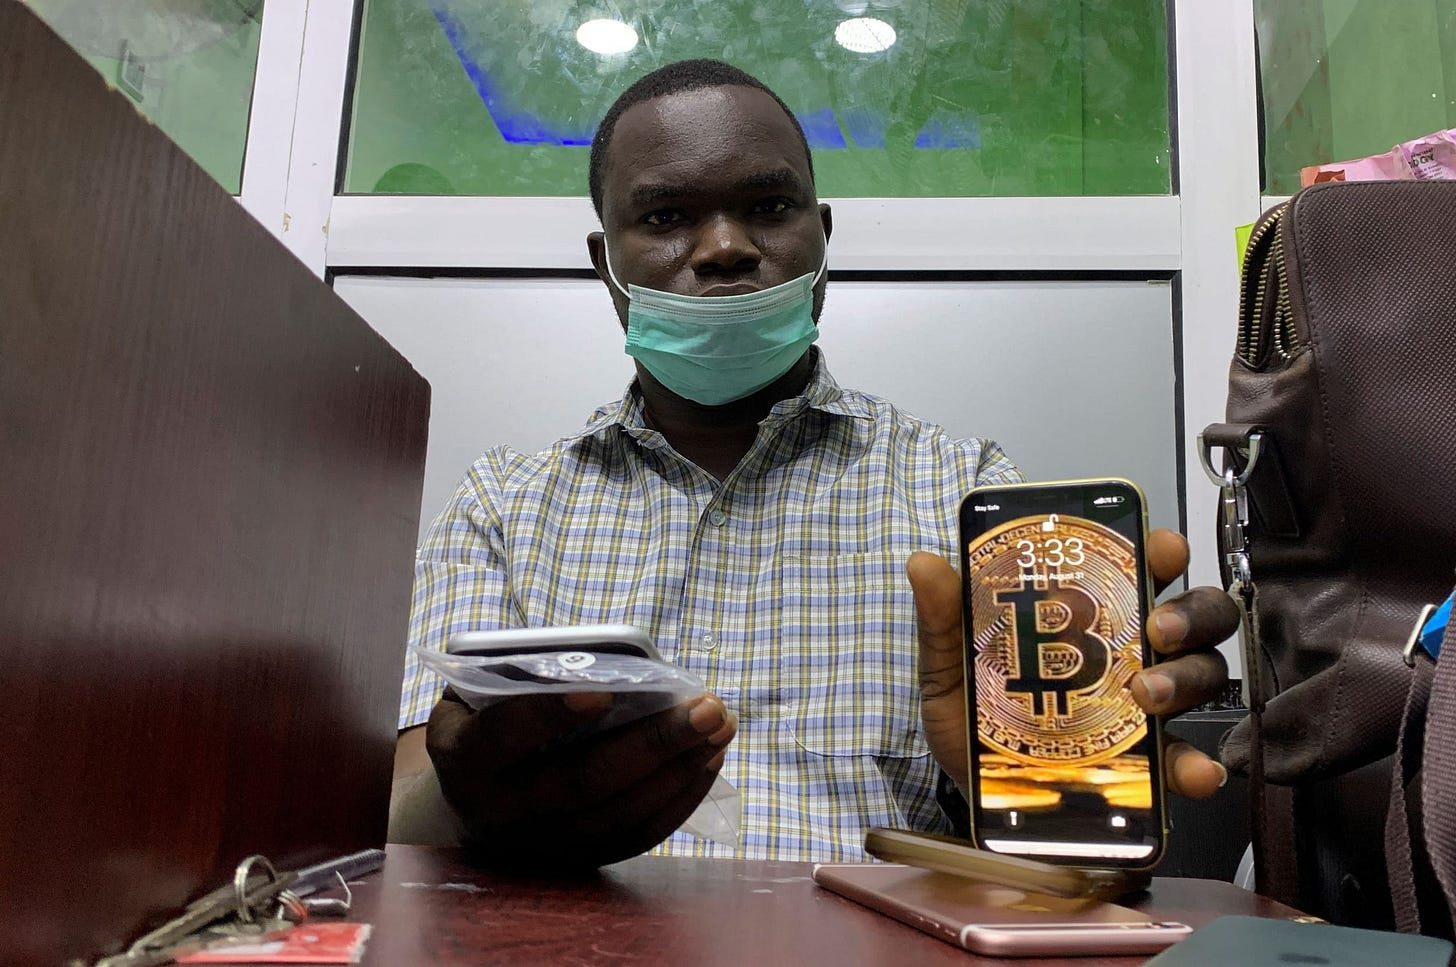 How bitcoin met the real world in Africa